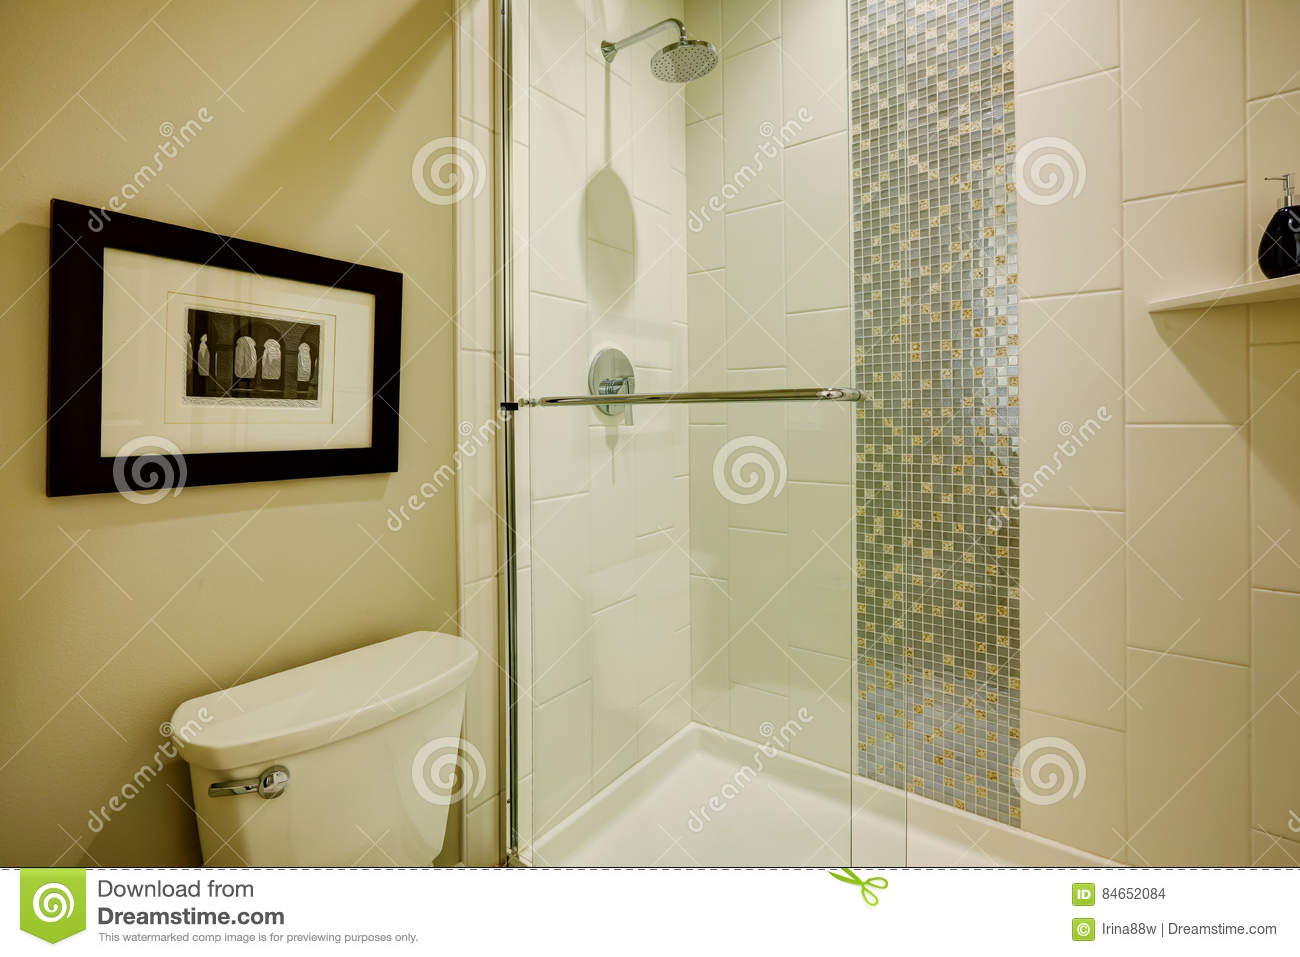 Glass Walk-in Shower In A Bathroom Of Brand-new Home Stock Photo ...